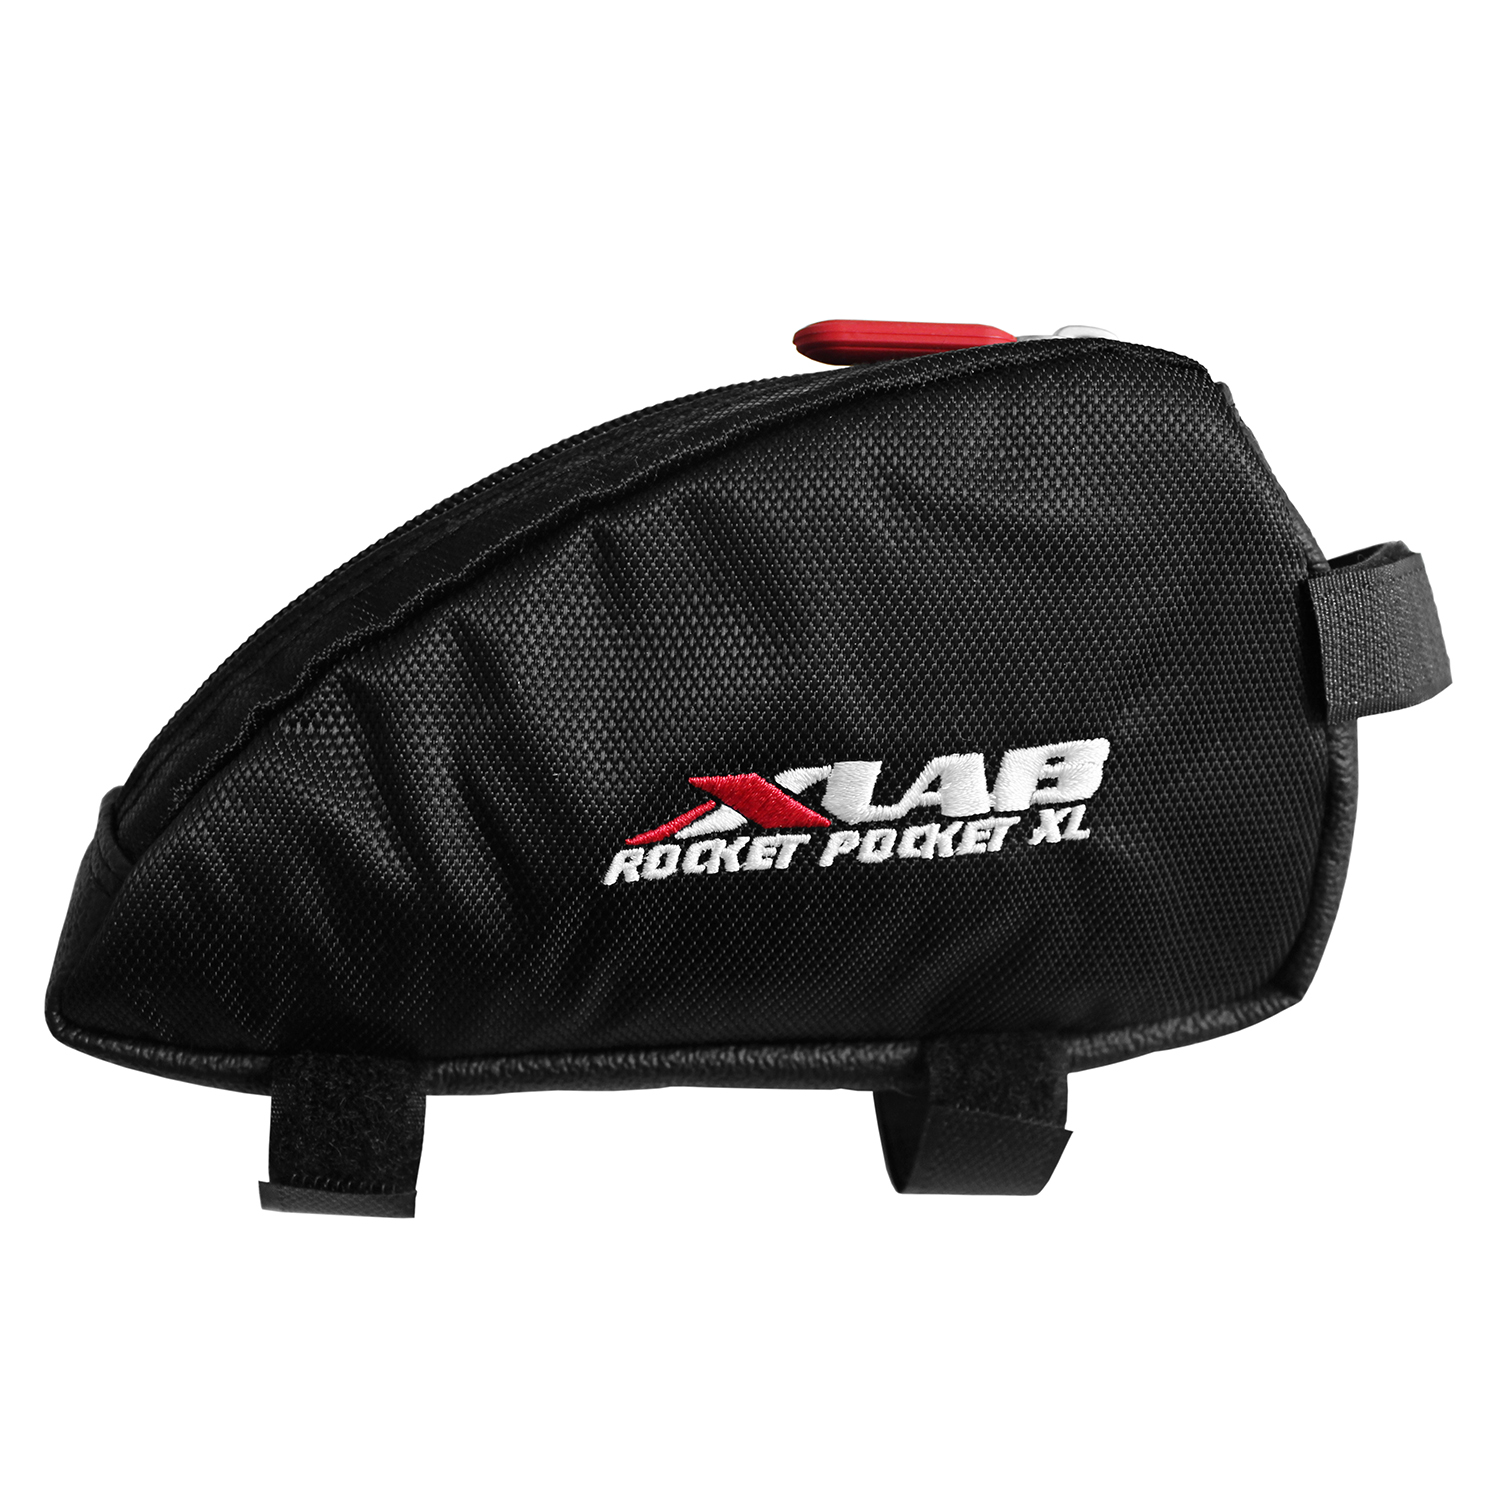 XLab Rocket Pocket XL Frame Bag